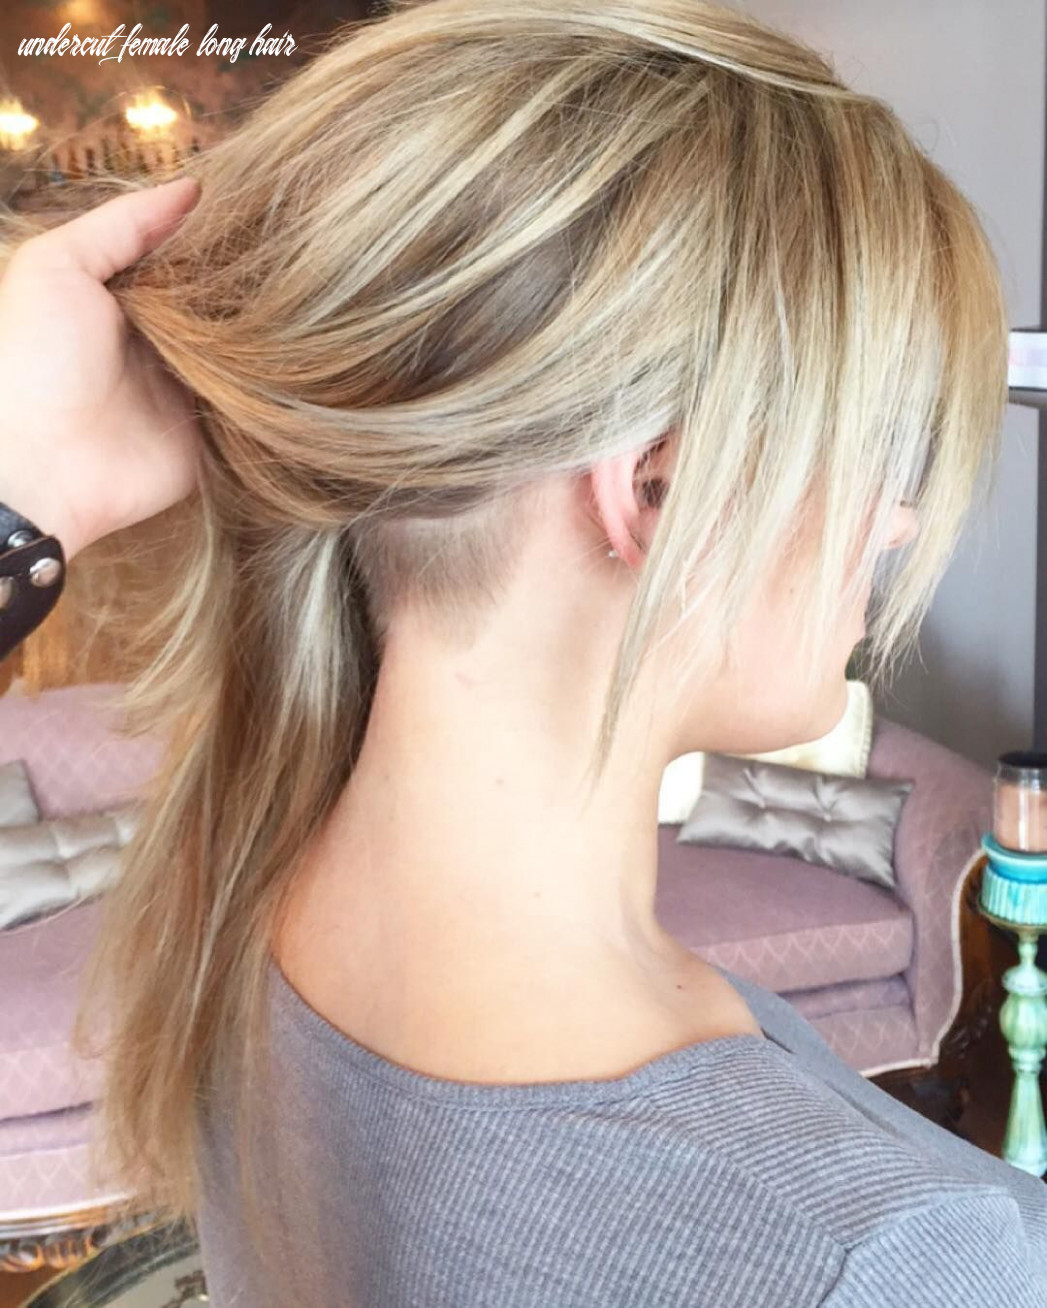 Pin on Hair by Jawni Sears